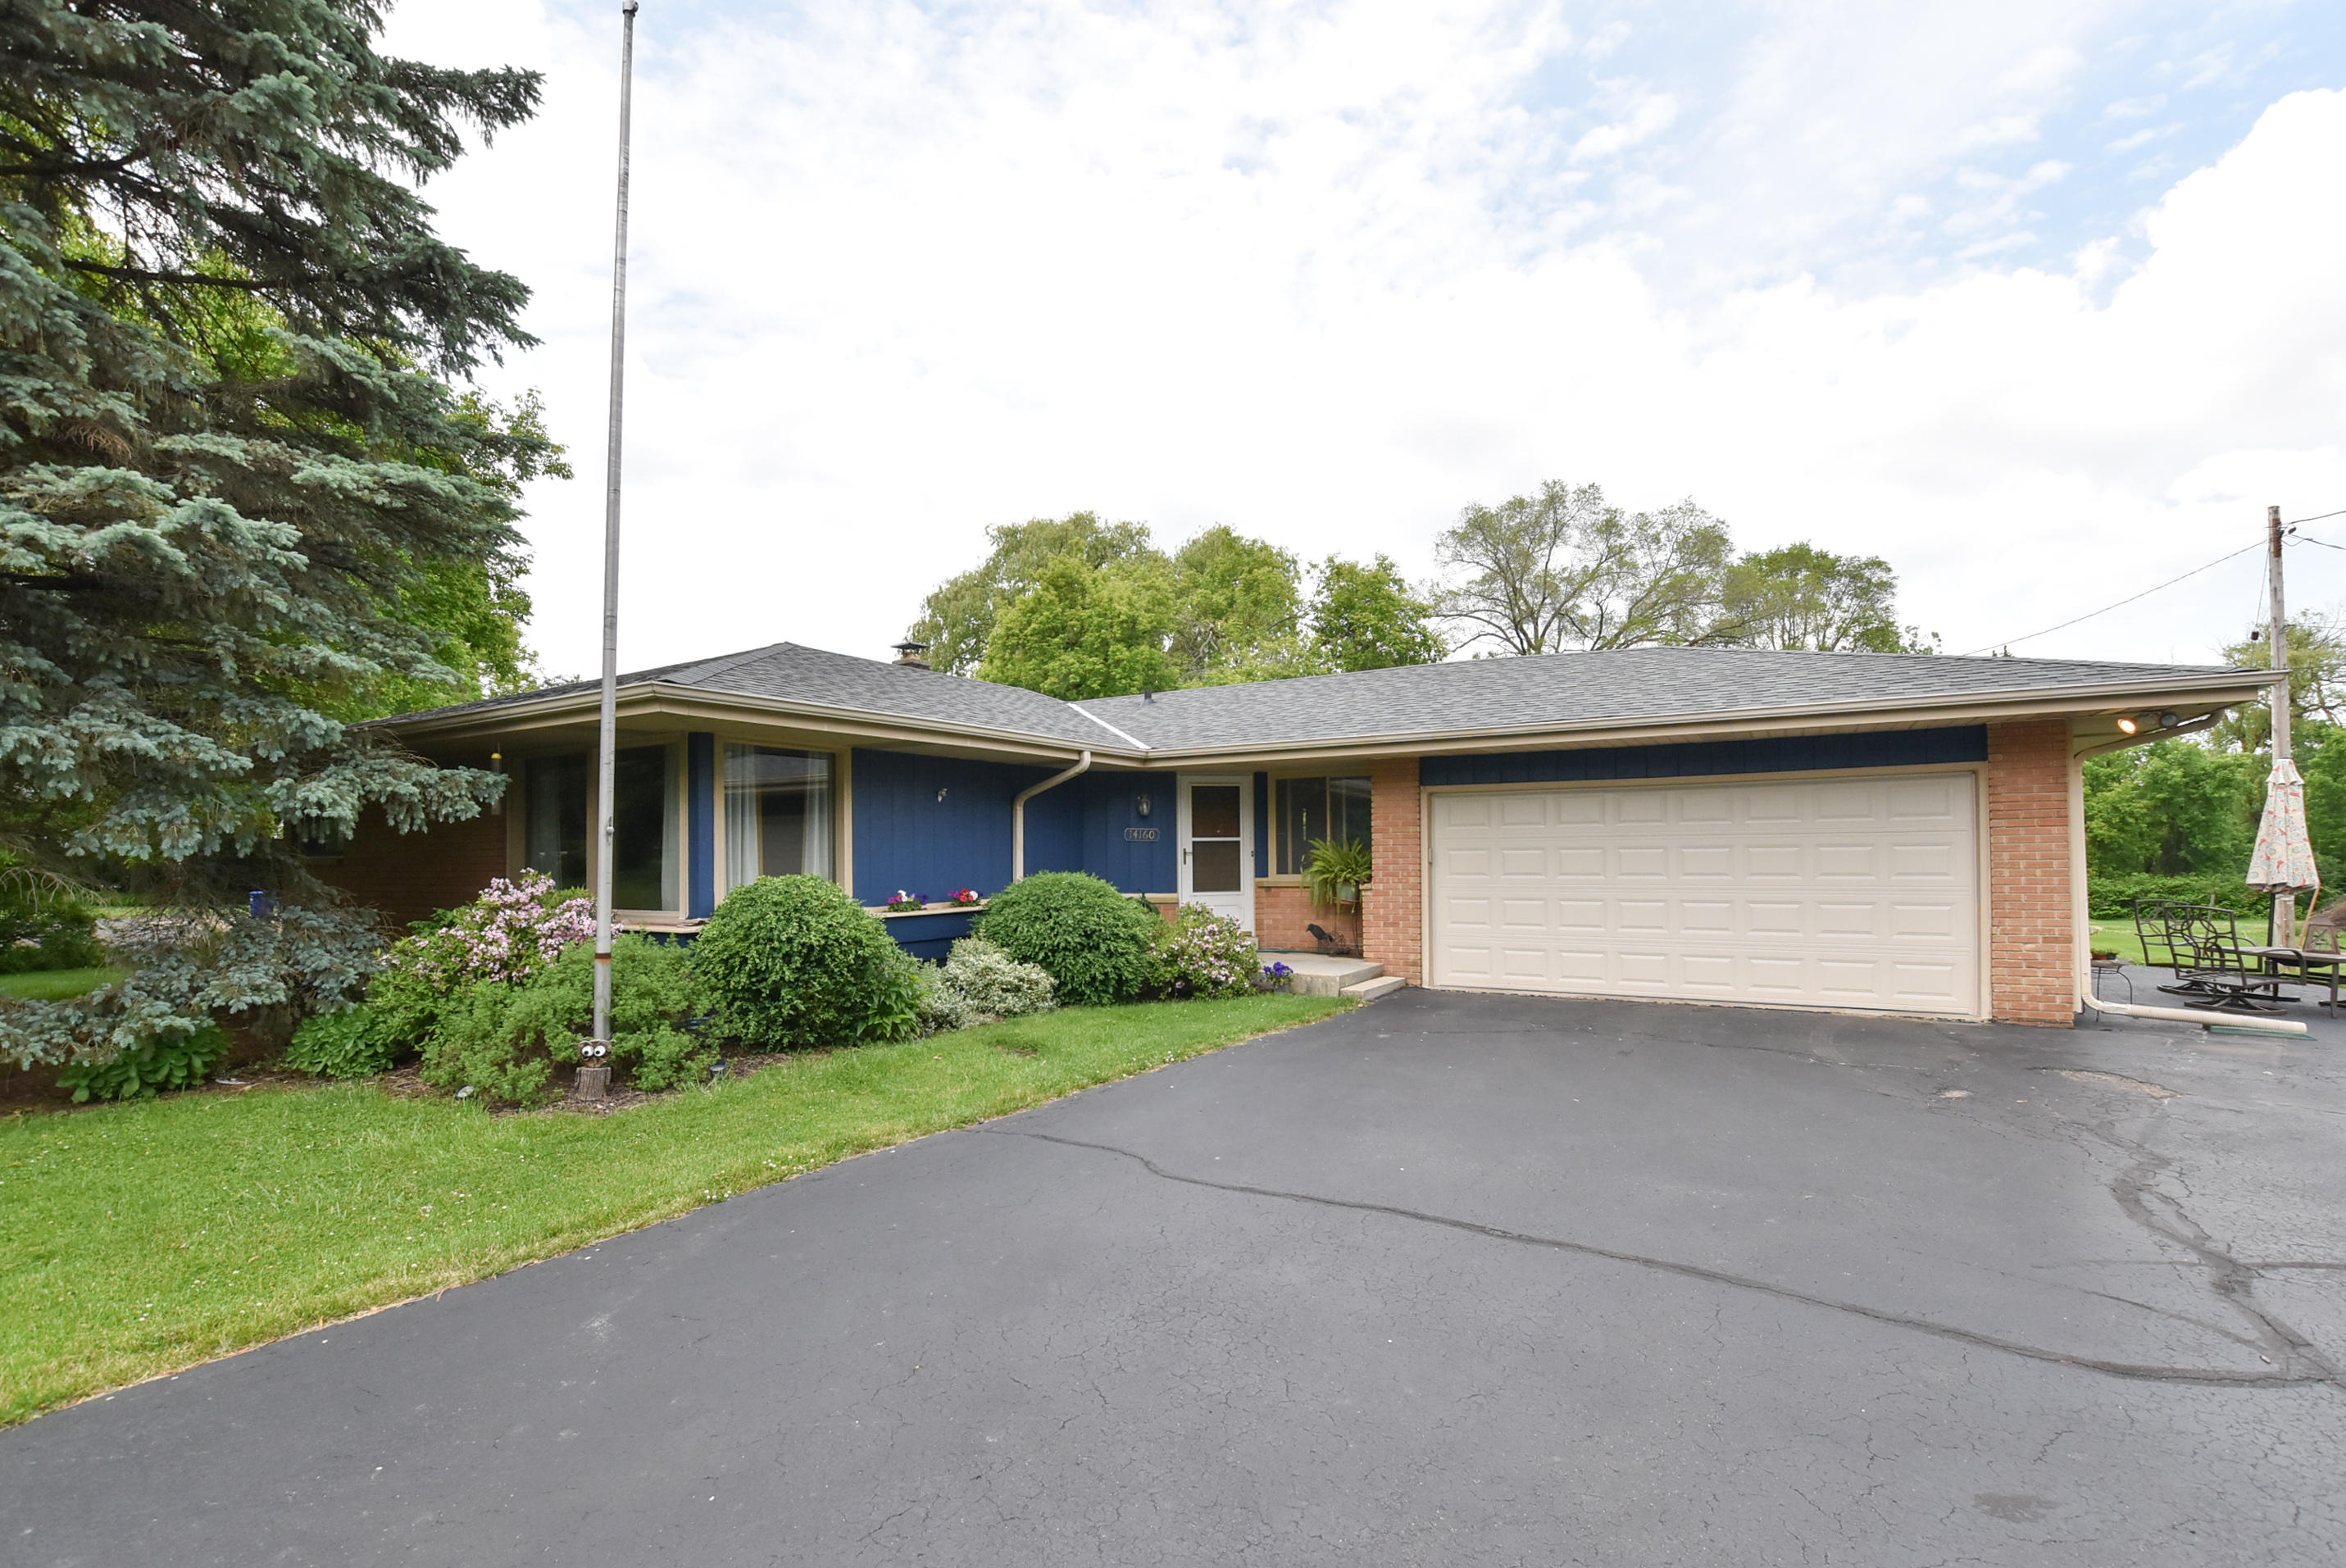 14160 Lisbon Rd, Brookfield, Wisconsin 53005, 3 Bedrooms Bedrooms, 9 Rooms Rooms,1 BathroomBathrooms,Single-Family,For Sale,Lisbon Rd,1647071